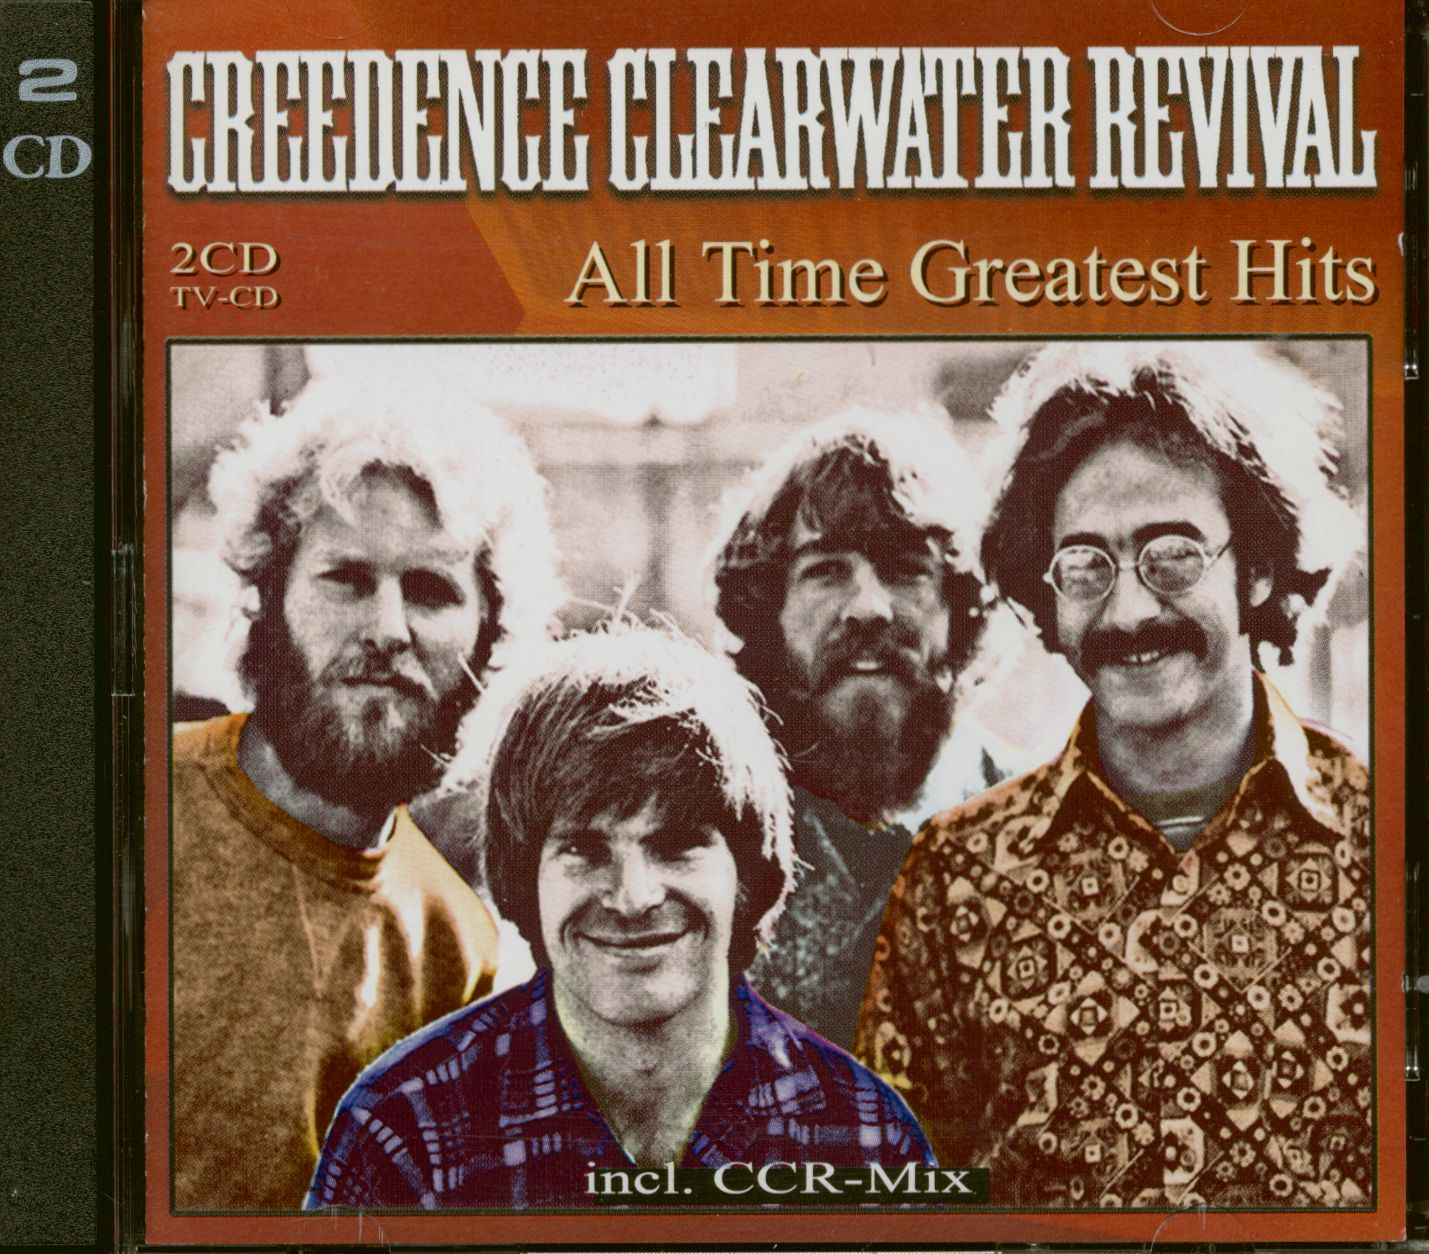 Creedence Clearwater Revival CD All Time Greatest Hits 20 CD   Bear  Family Records